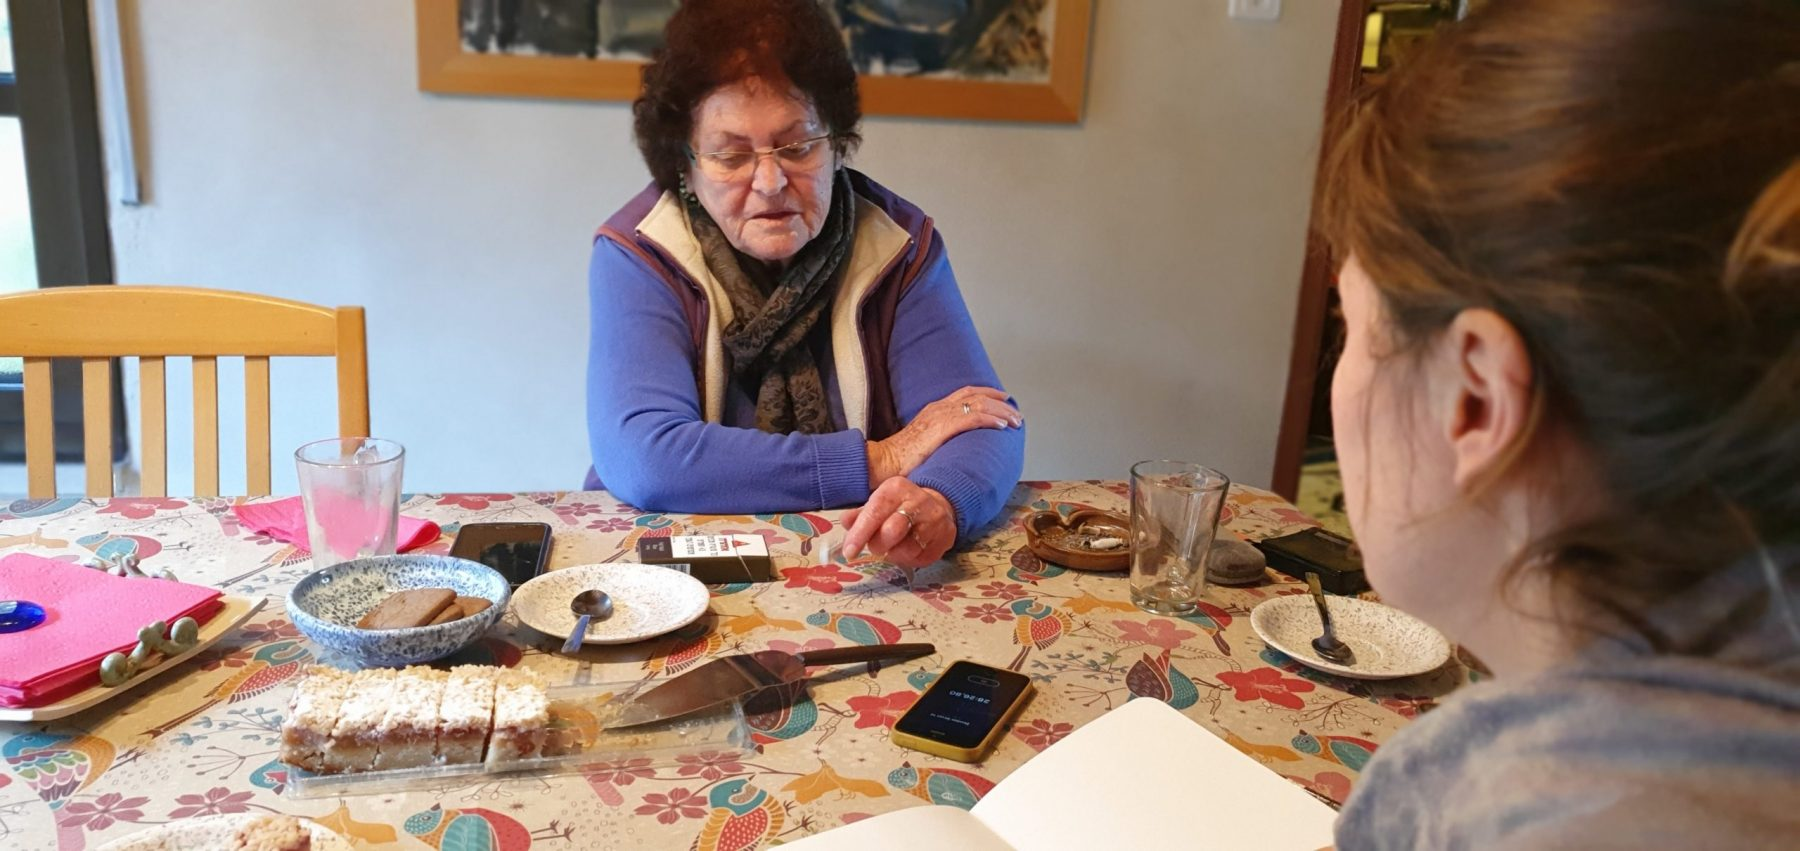 Barbara and Emmie at Emmie's house at Kiryat Tiv'on (February 2020)